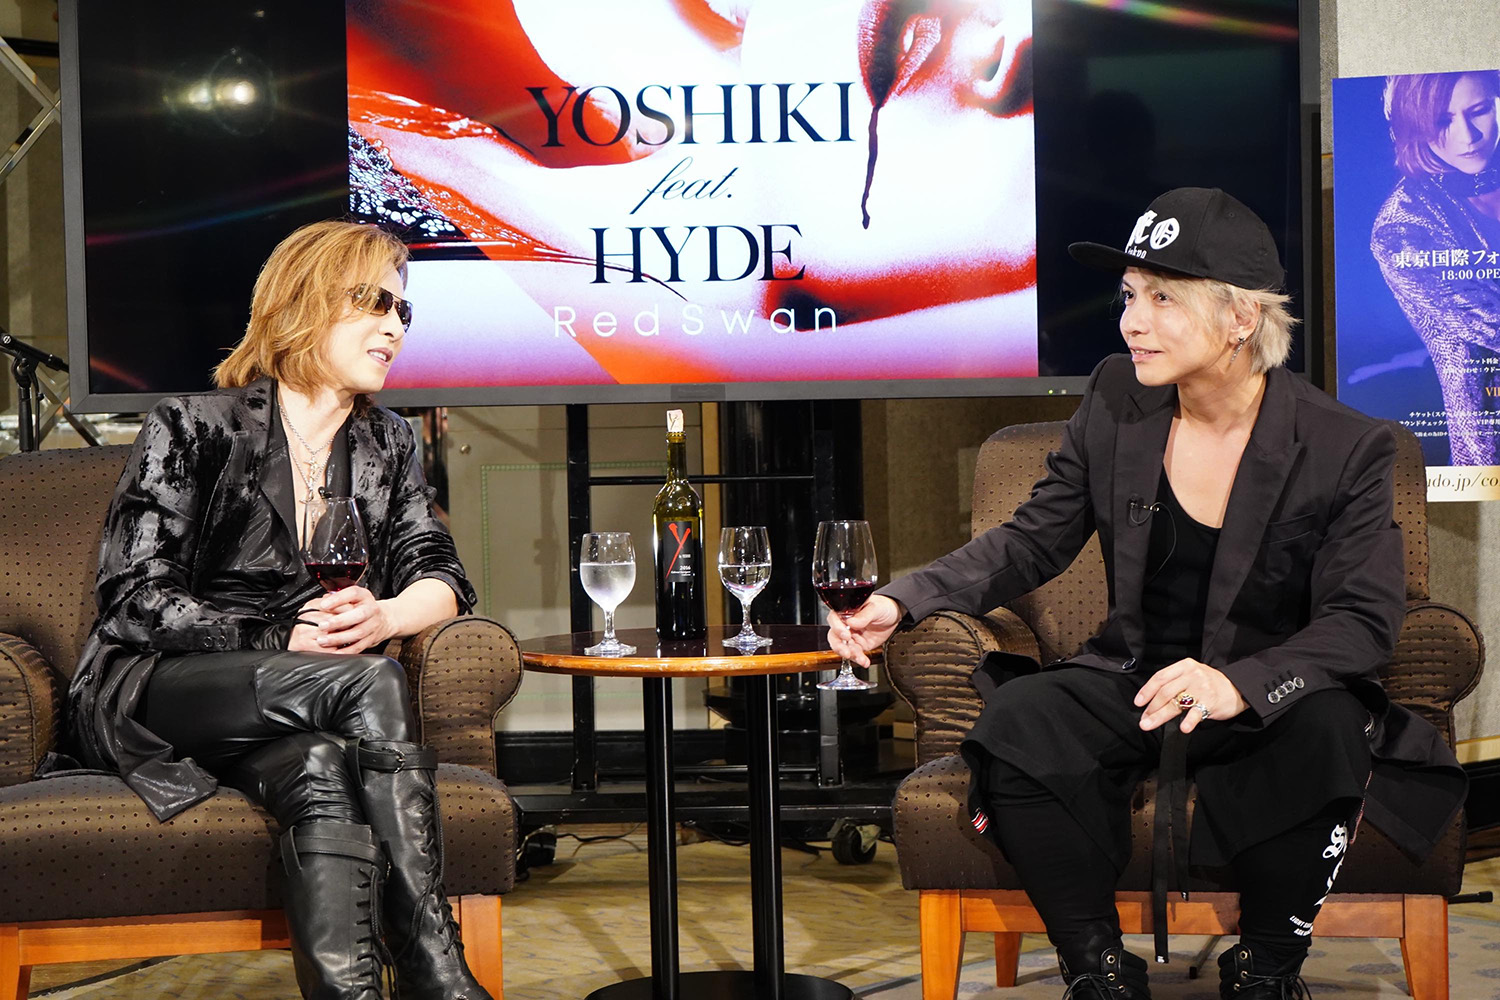 JRock247-Yoshiki-Hyde-Red-Swan-Music-Station-20180917-H0567